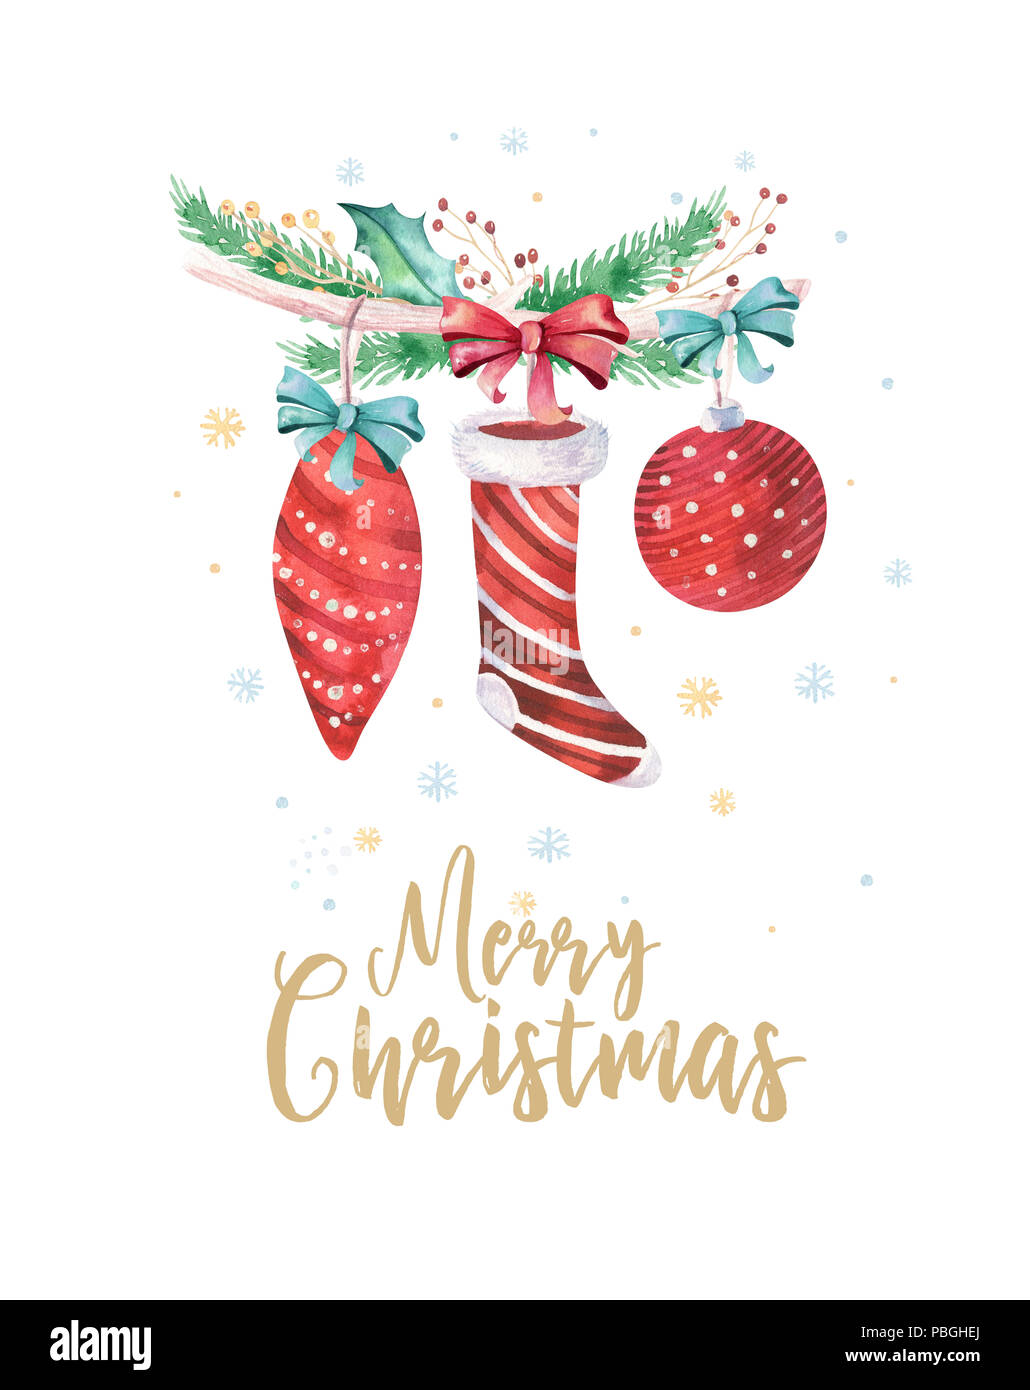 Christmas Graphics 2019.Merry Christmas And Happy New Year 2019 Decoration Winter